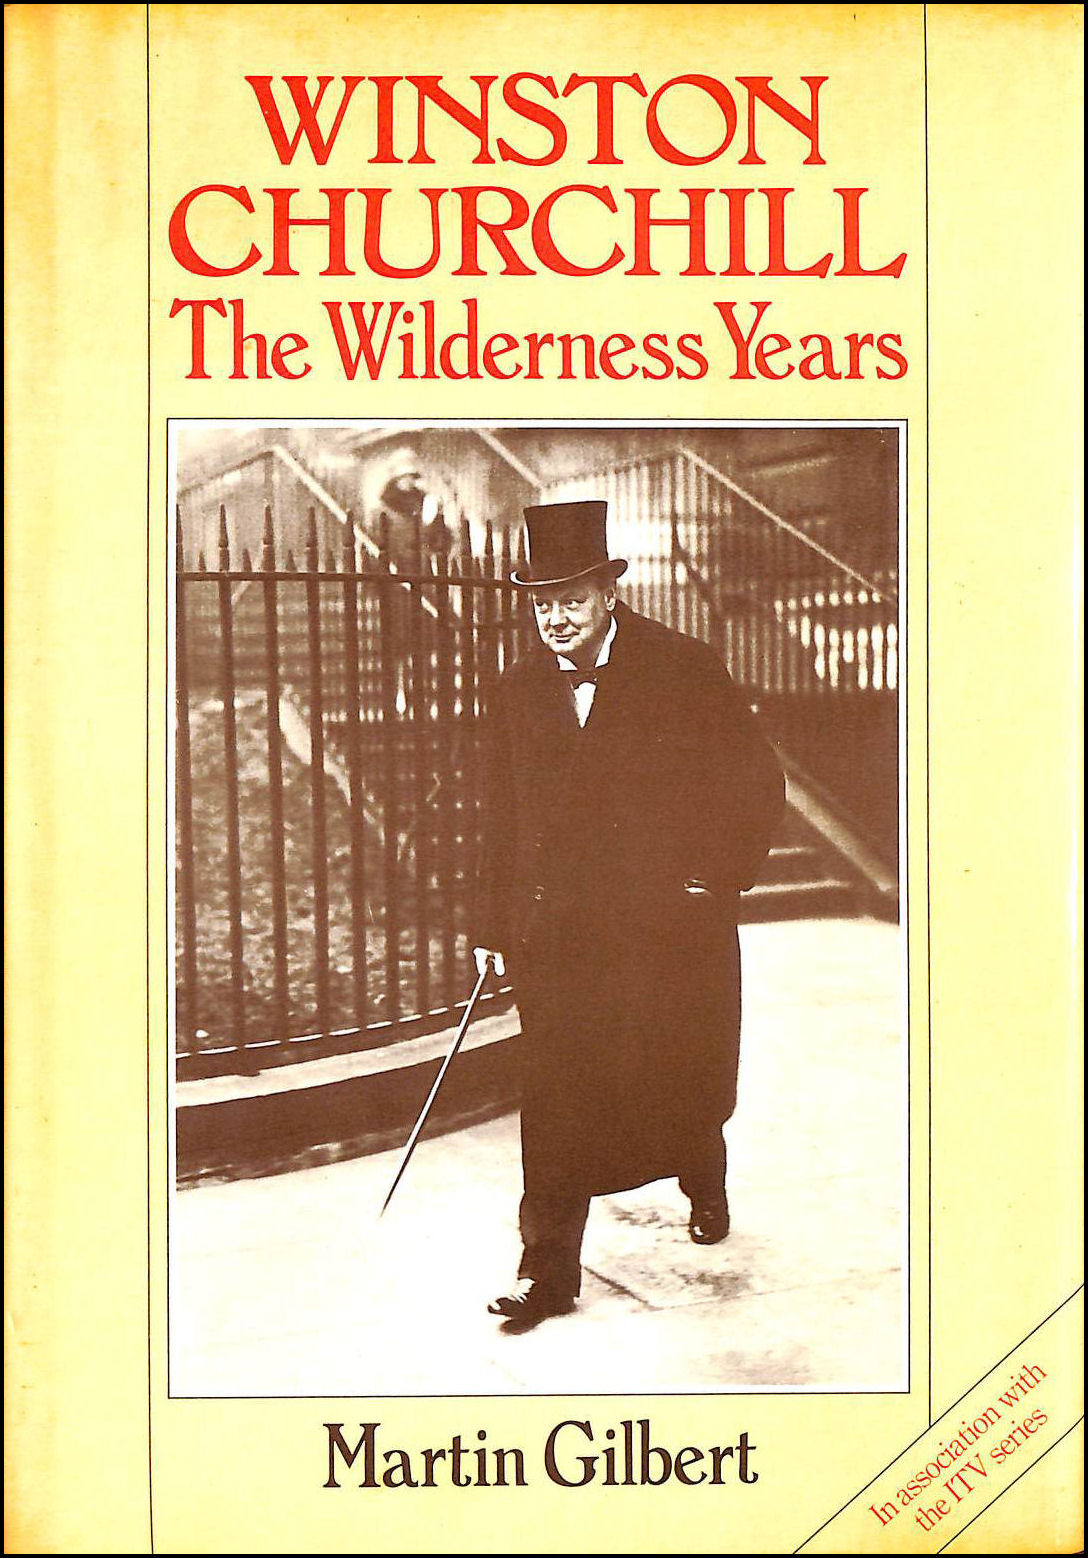 Winston Churchill, The Wilderness Years, Martin Gilbert